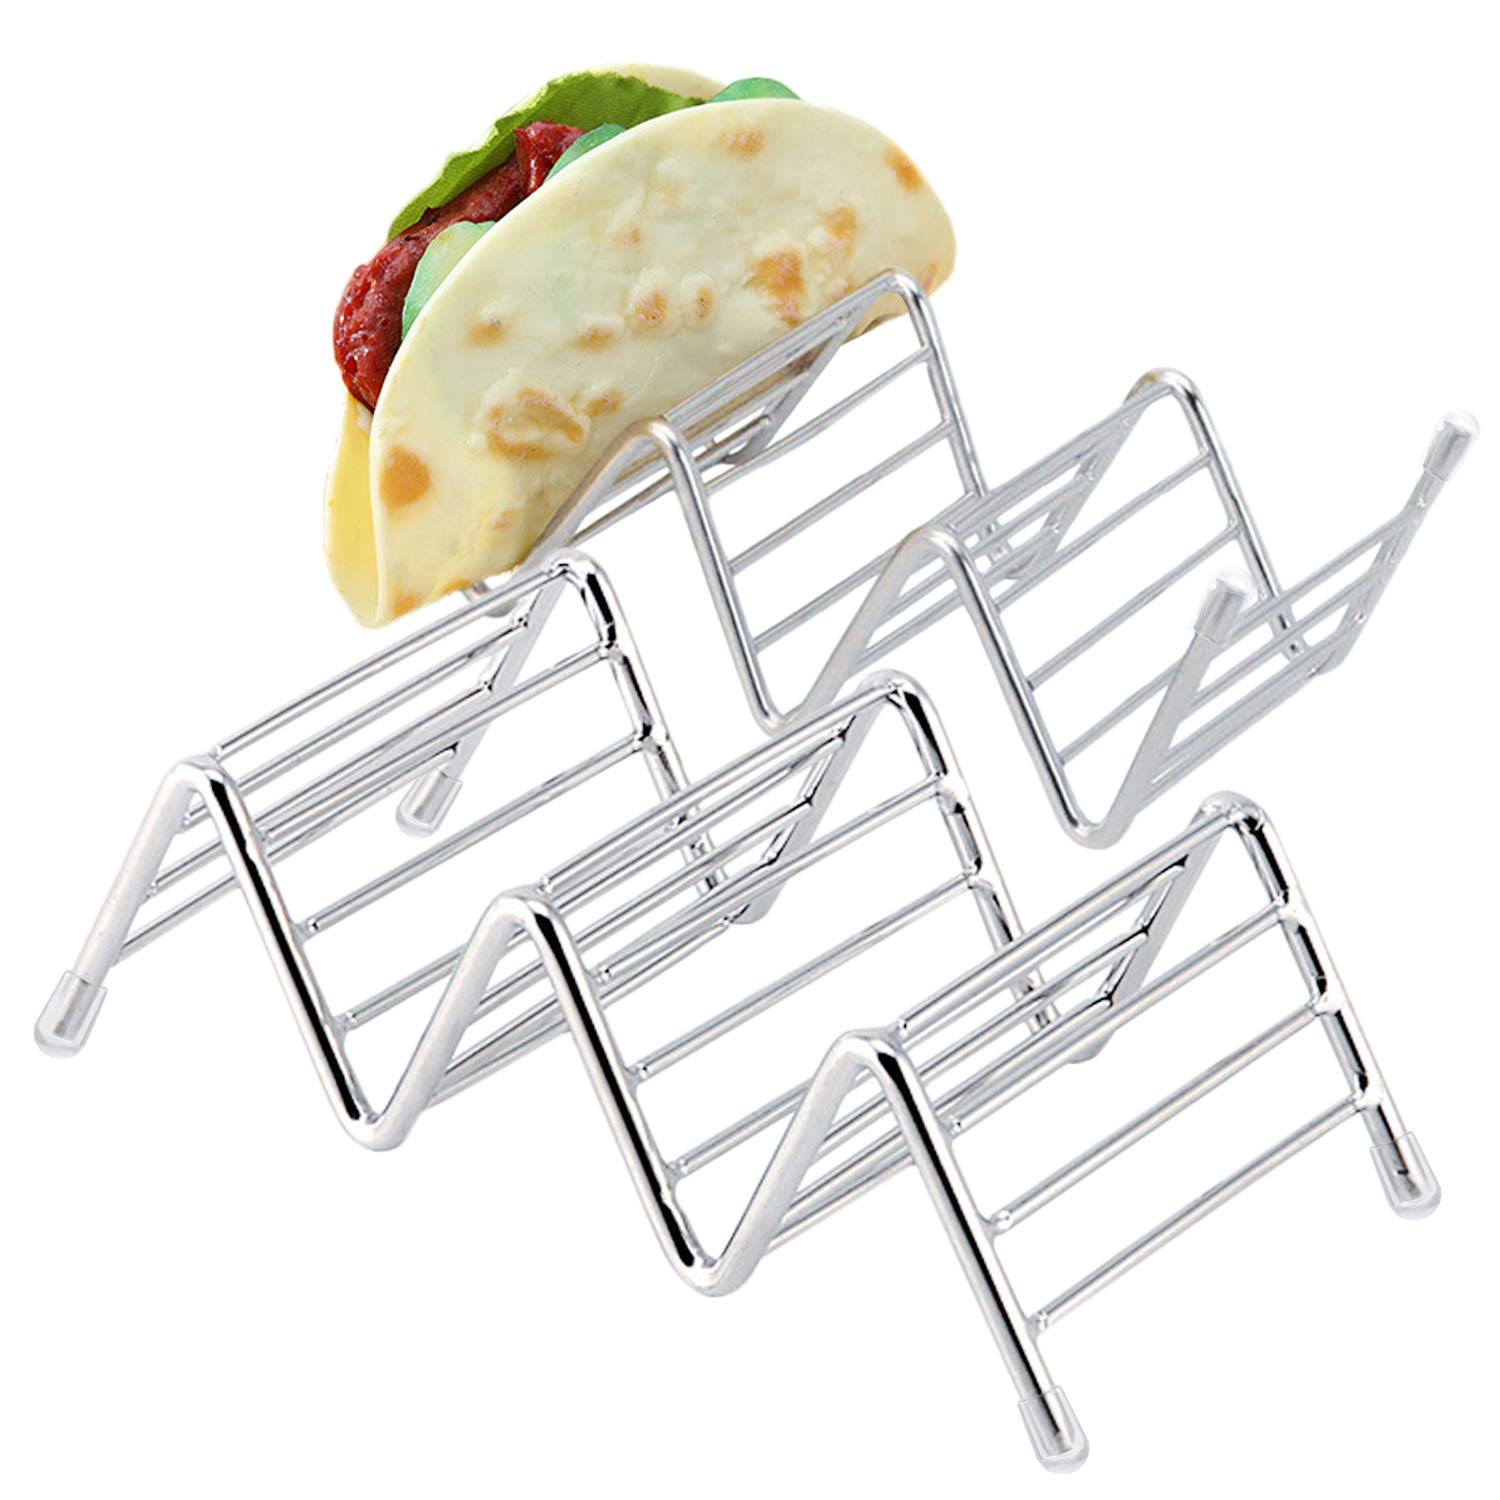 Kalevel 2 Pack Taco Shell Holder Taco Stands Stainless Steel Taco Tray Oven Safe Taco Holder Taco Serving Rack for 1 to 2 Hard or Soft Shell Tacos